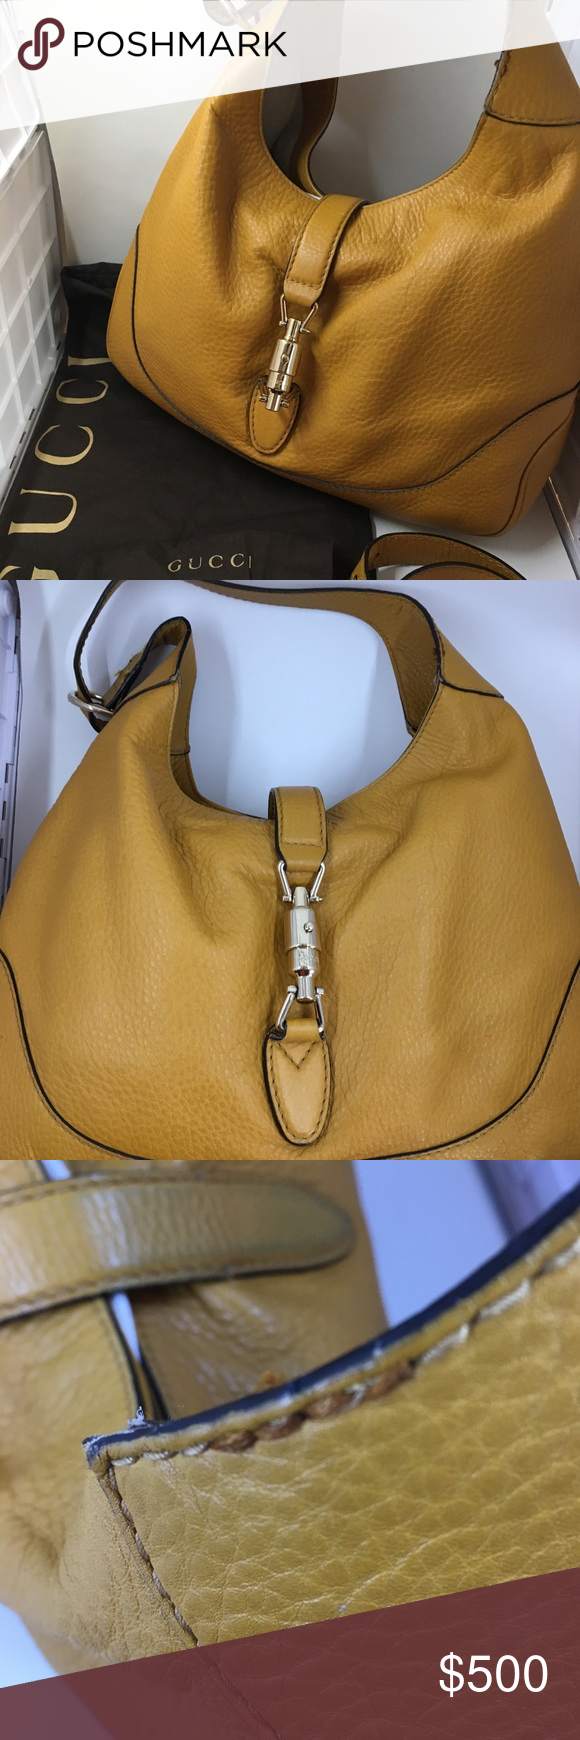 1f88d10eb60d Gucci Jackie hobo bag A Gucci classic, this yellow Jackie hobo is a great  everyday